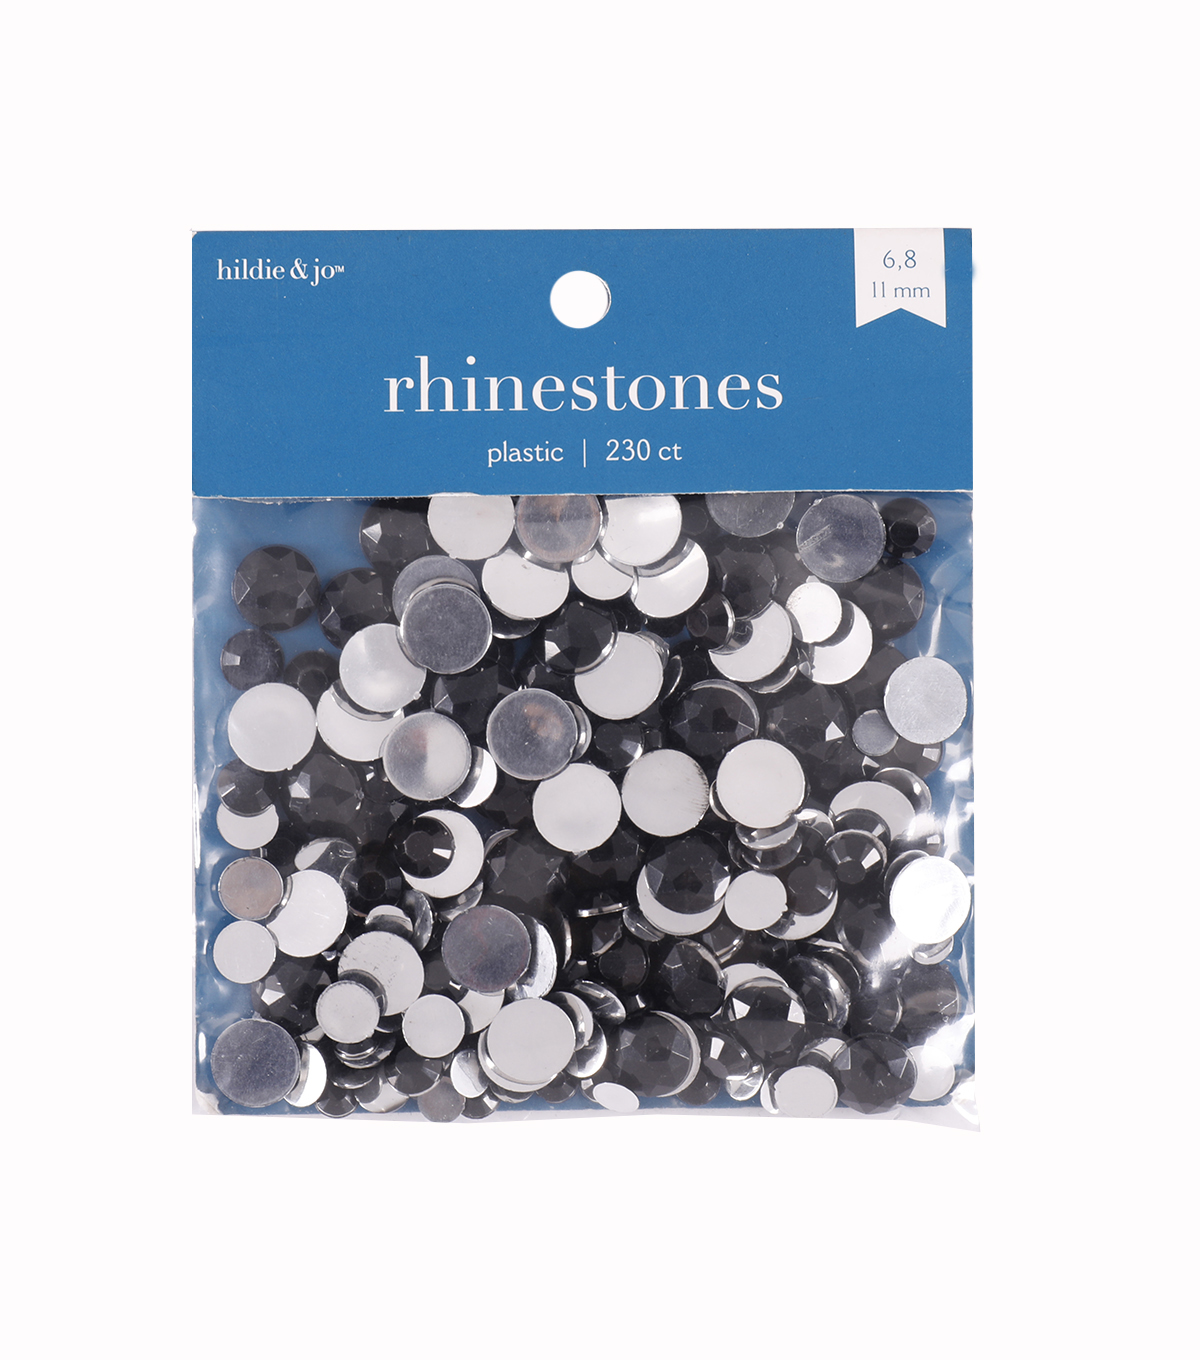 Black Rhinestones, Round, Assorted Sizes. 22 grams